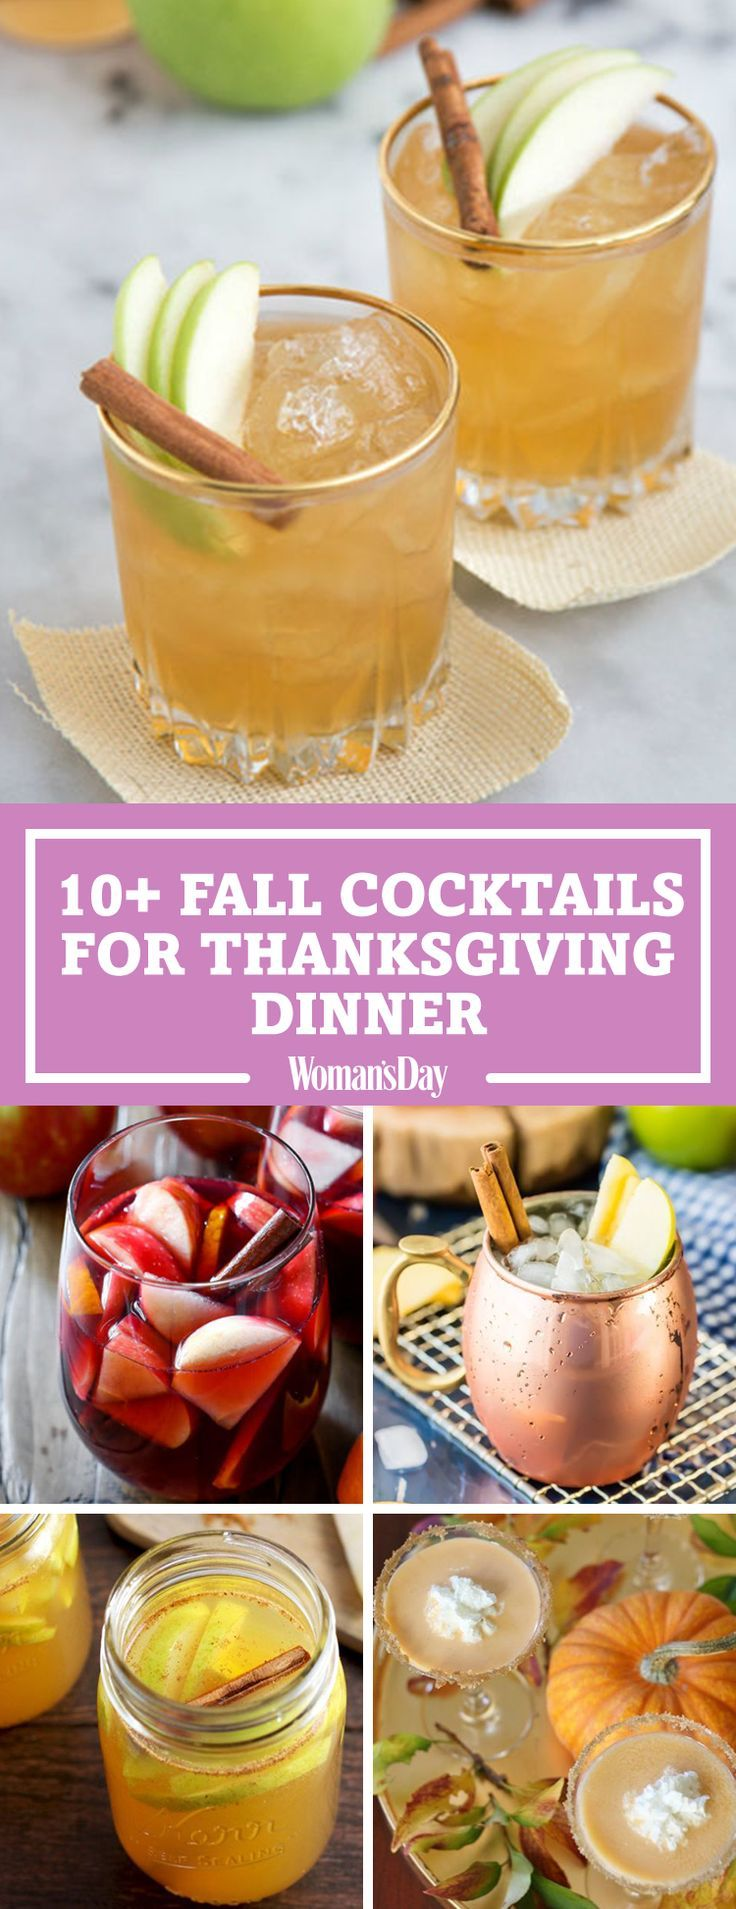 Save these great Thanksgiving cocktail recipes for later! Don't forget to follow Woman's Day on Pinterest for more great recipes.